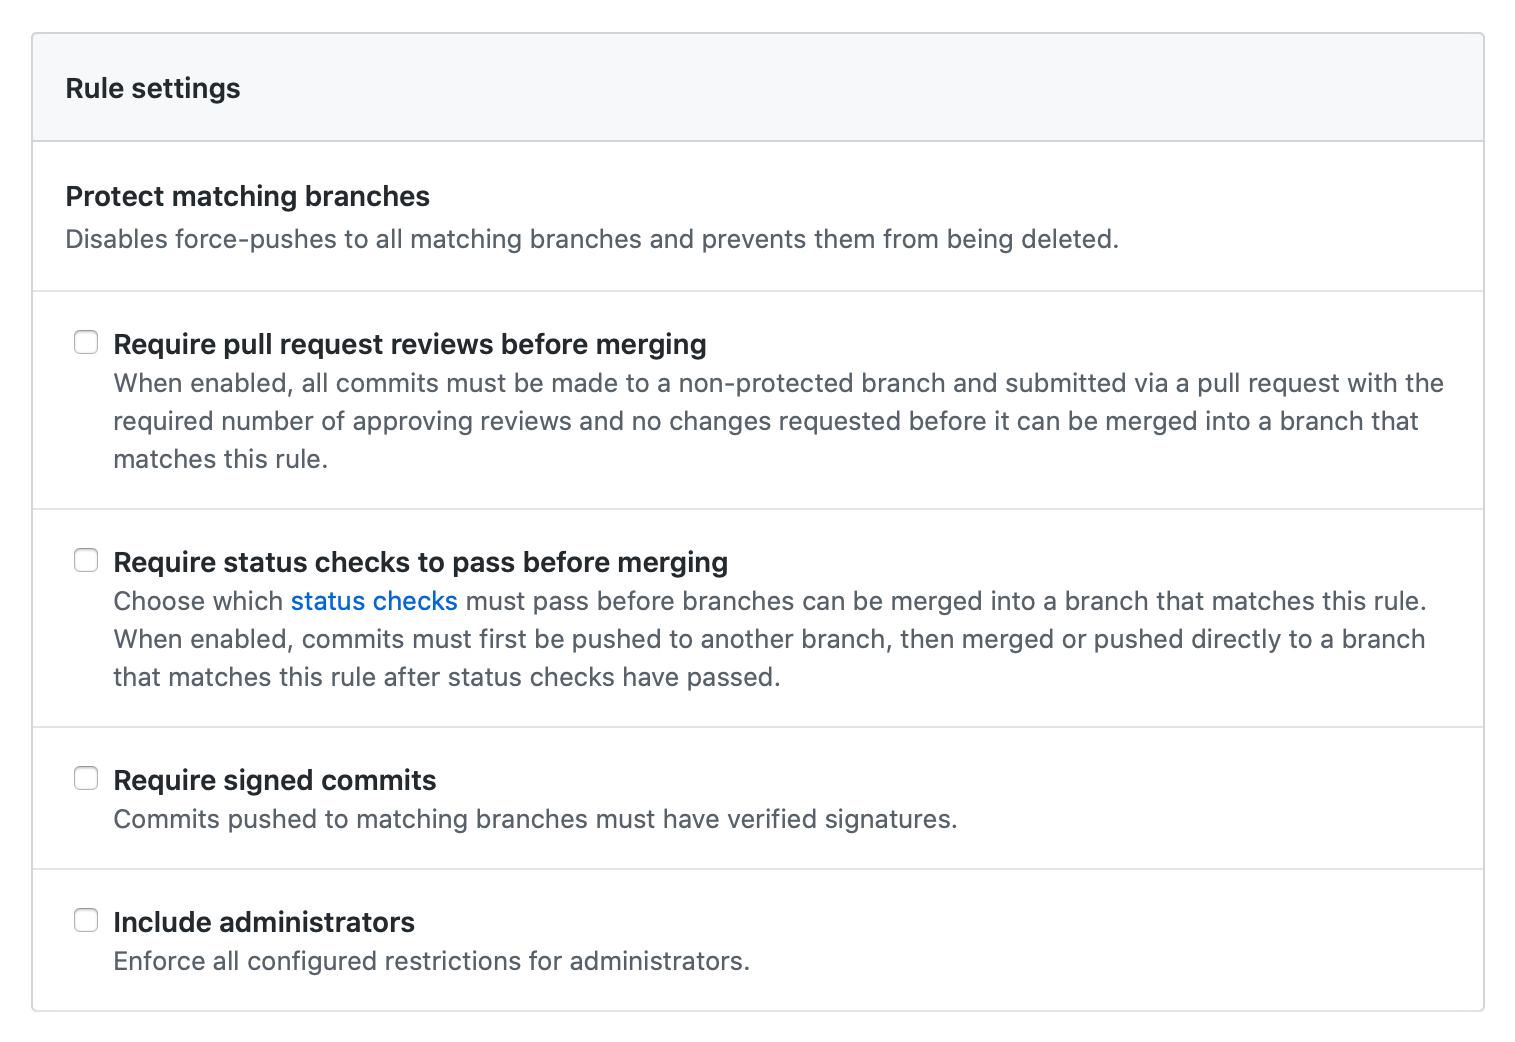 Protected branch rule settings